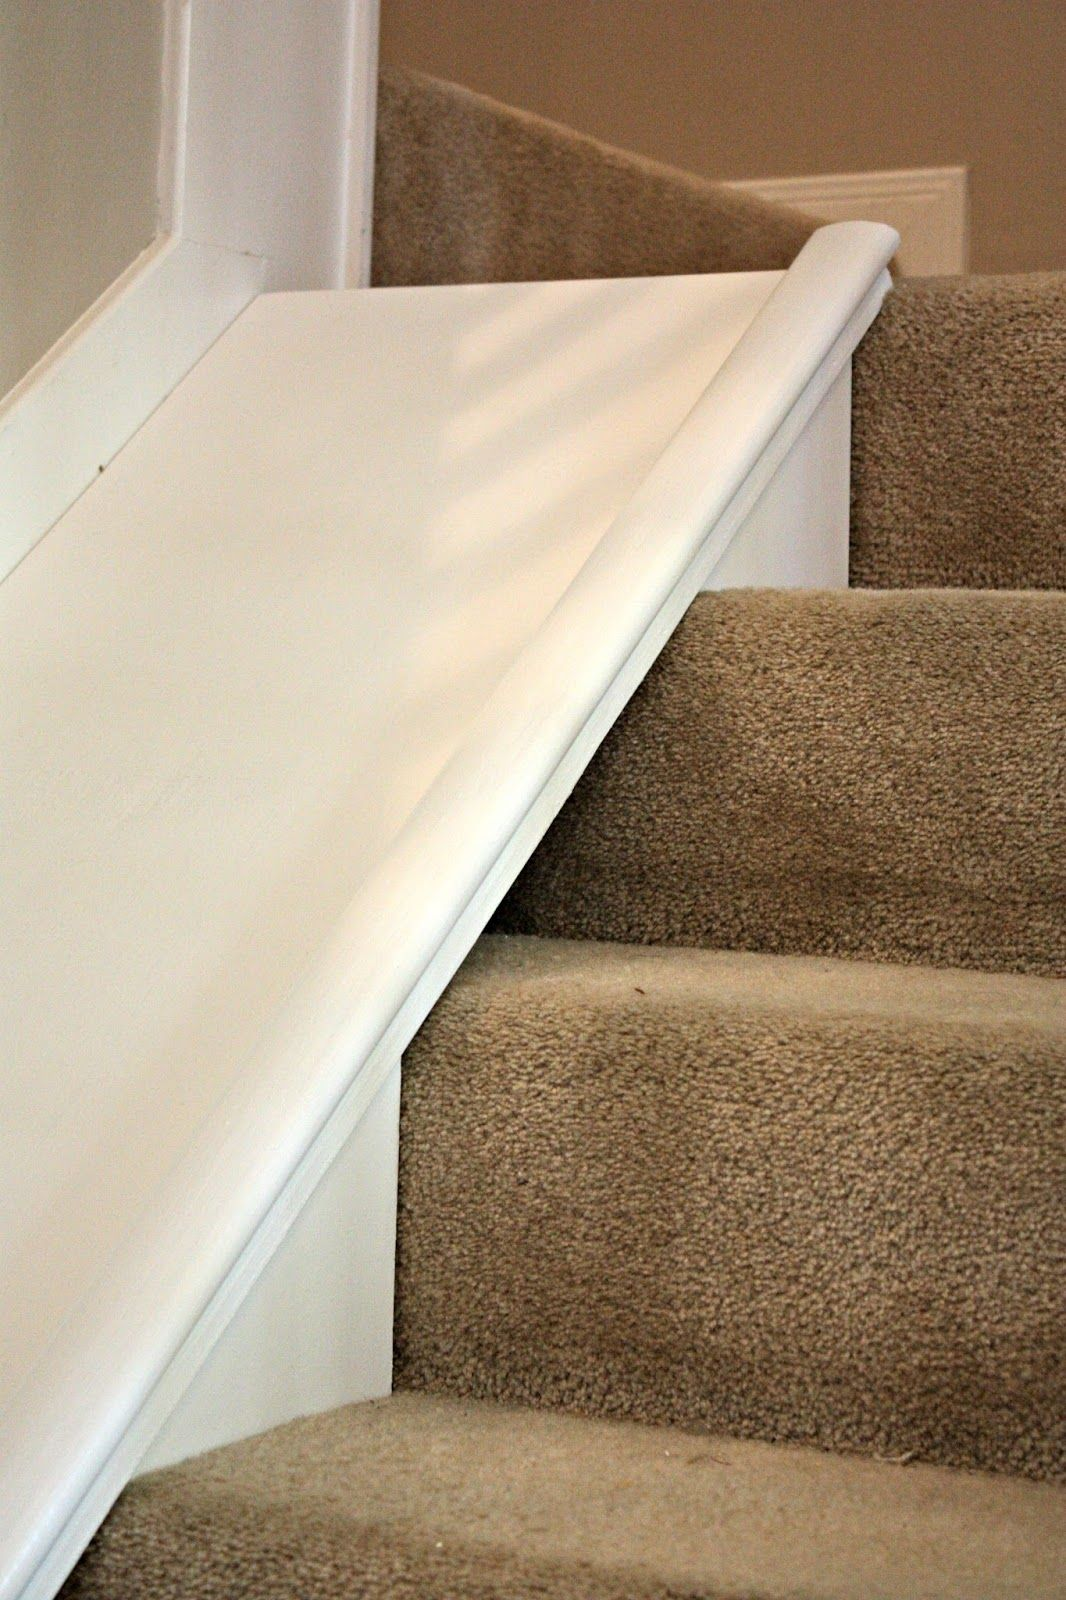 Diy Stair Slide Or How To Add A Slide To Your Stairs